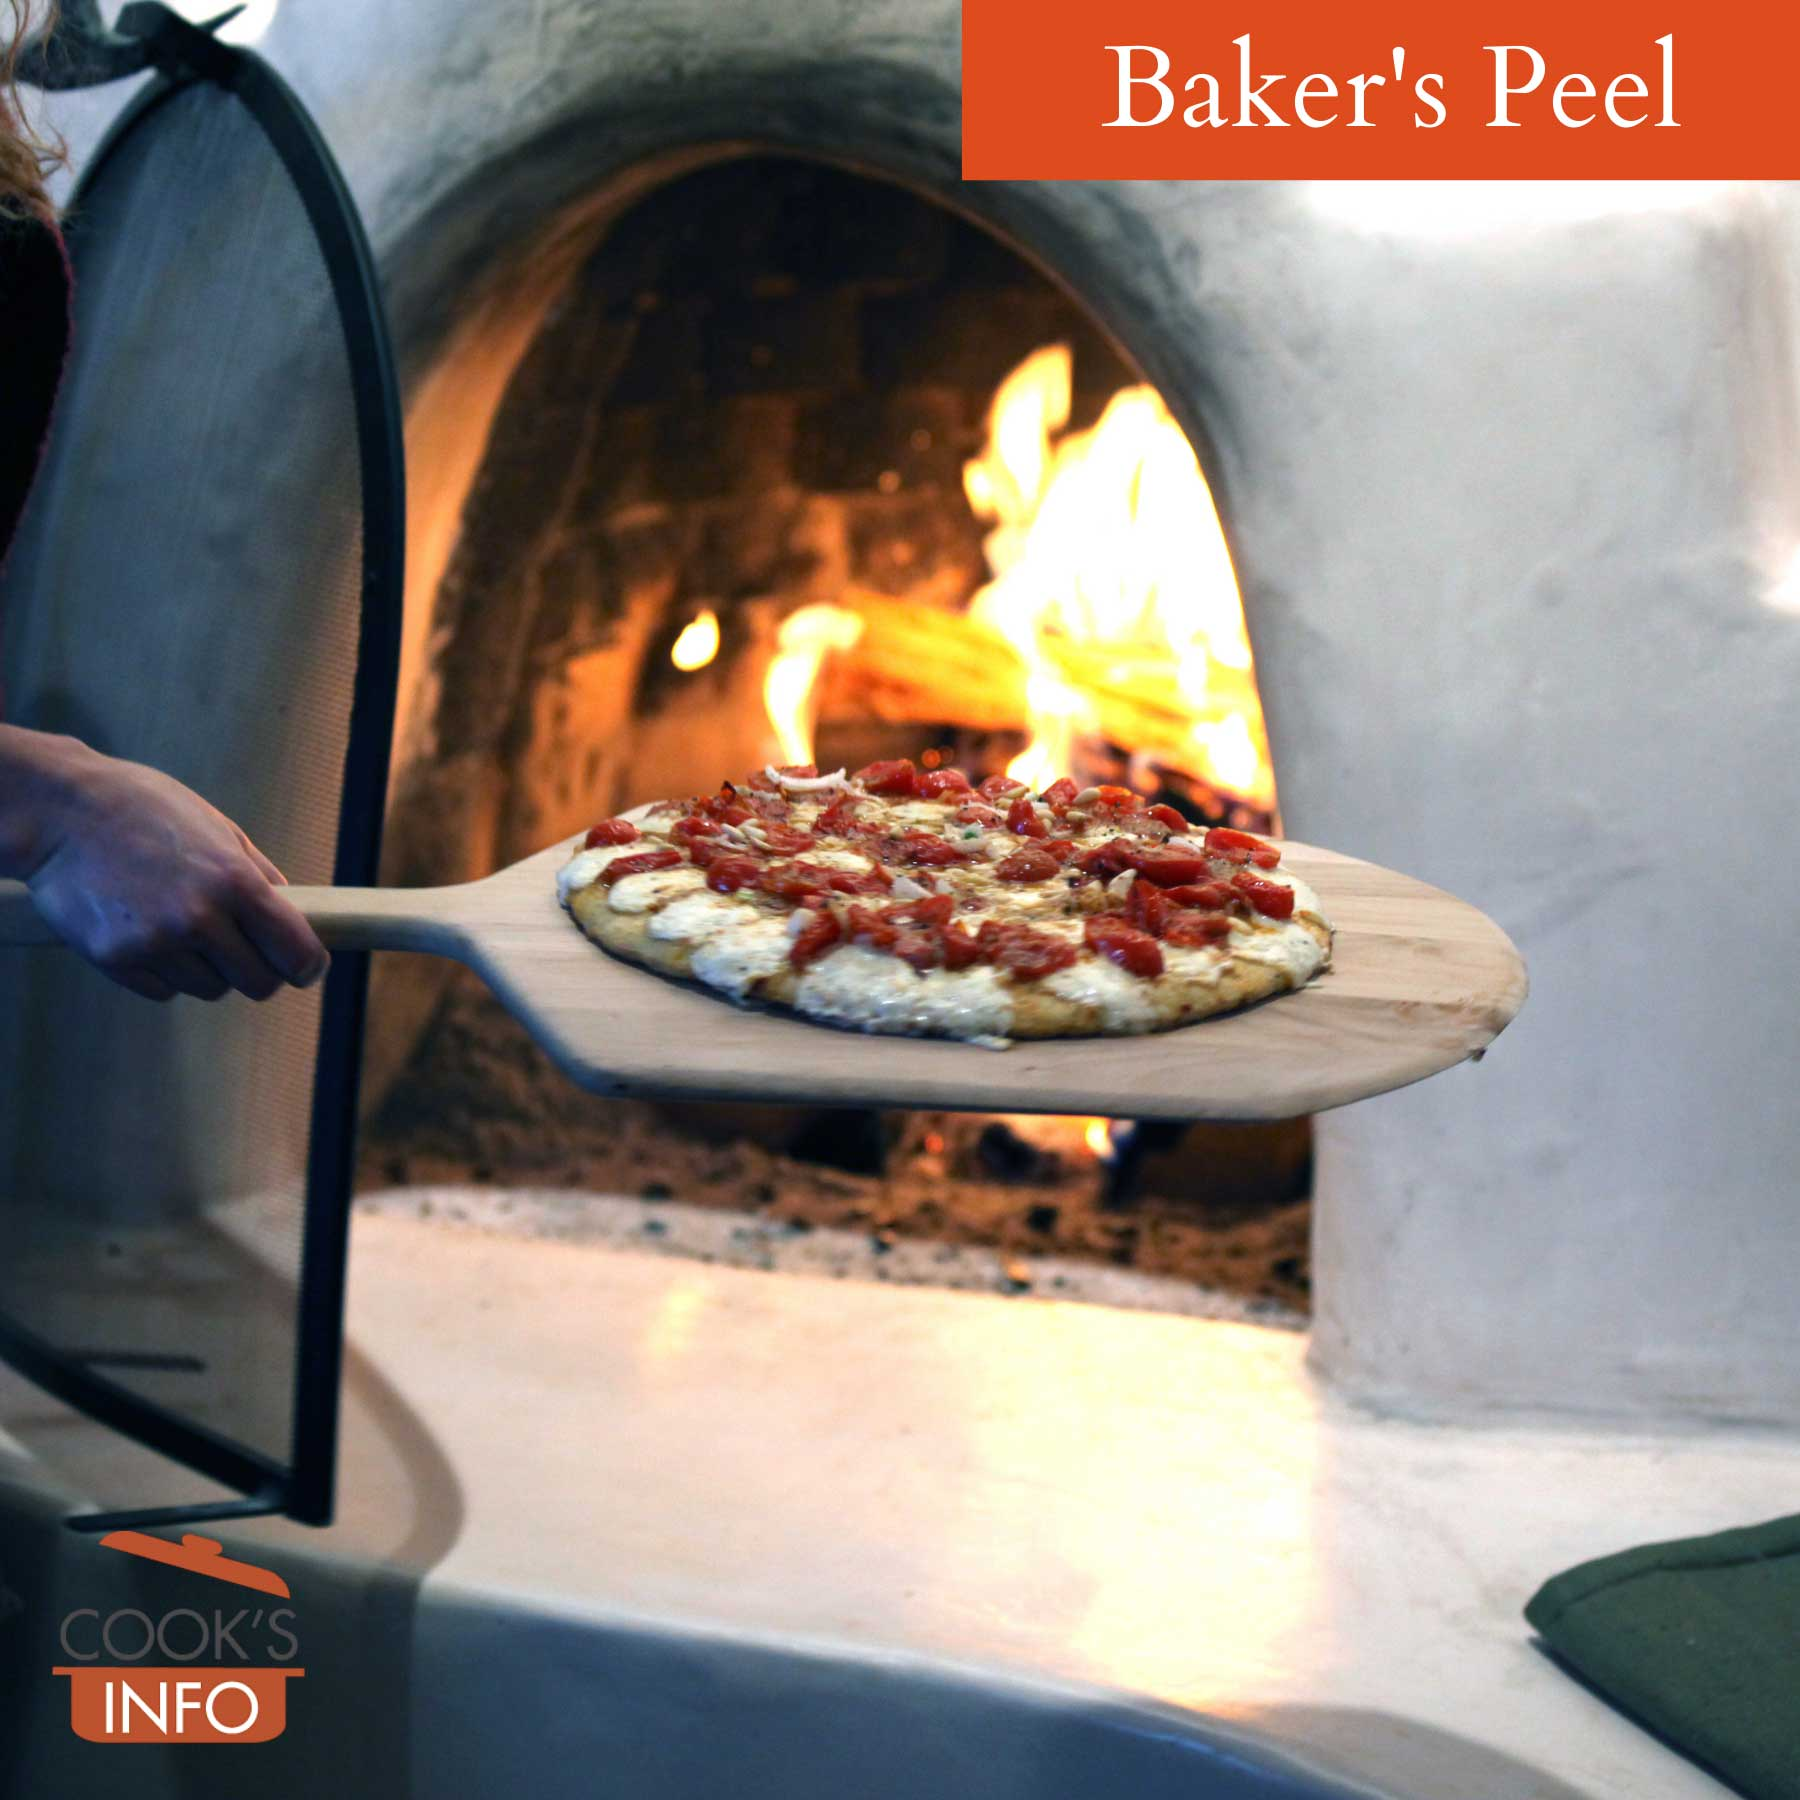 Short-handled baker's peel used for pizza